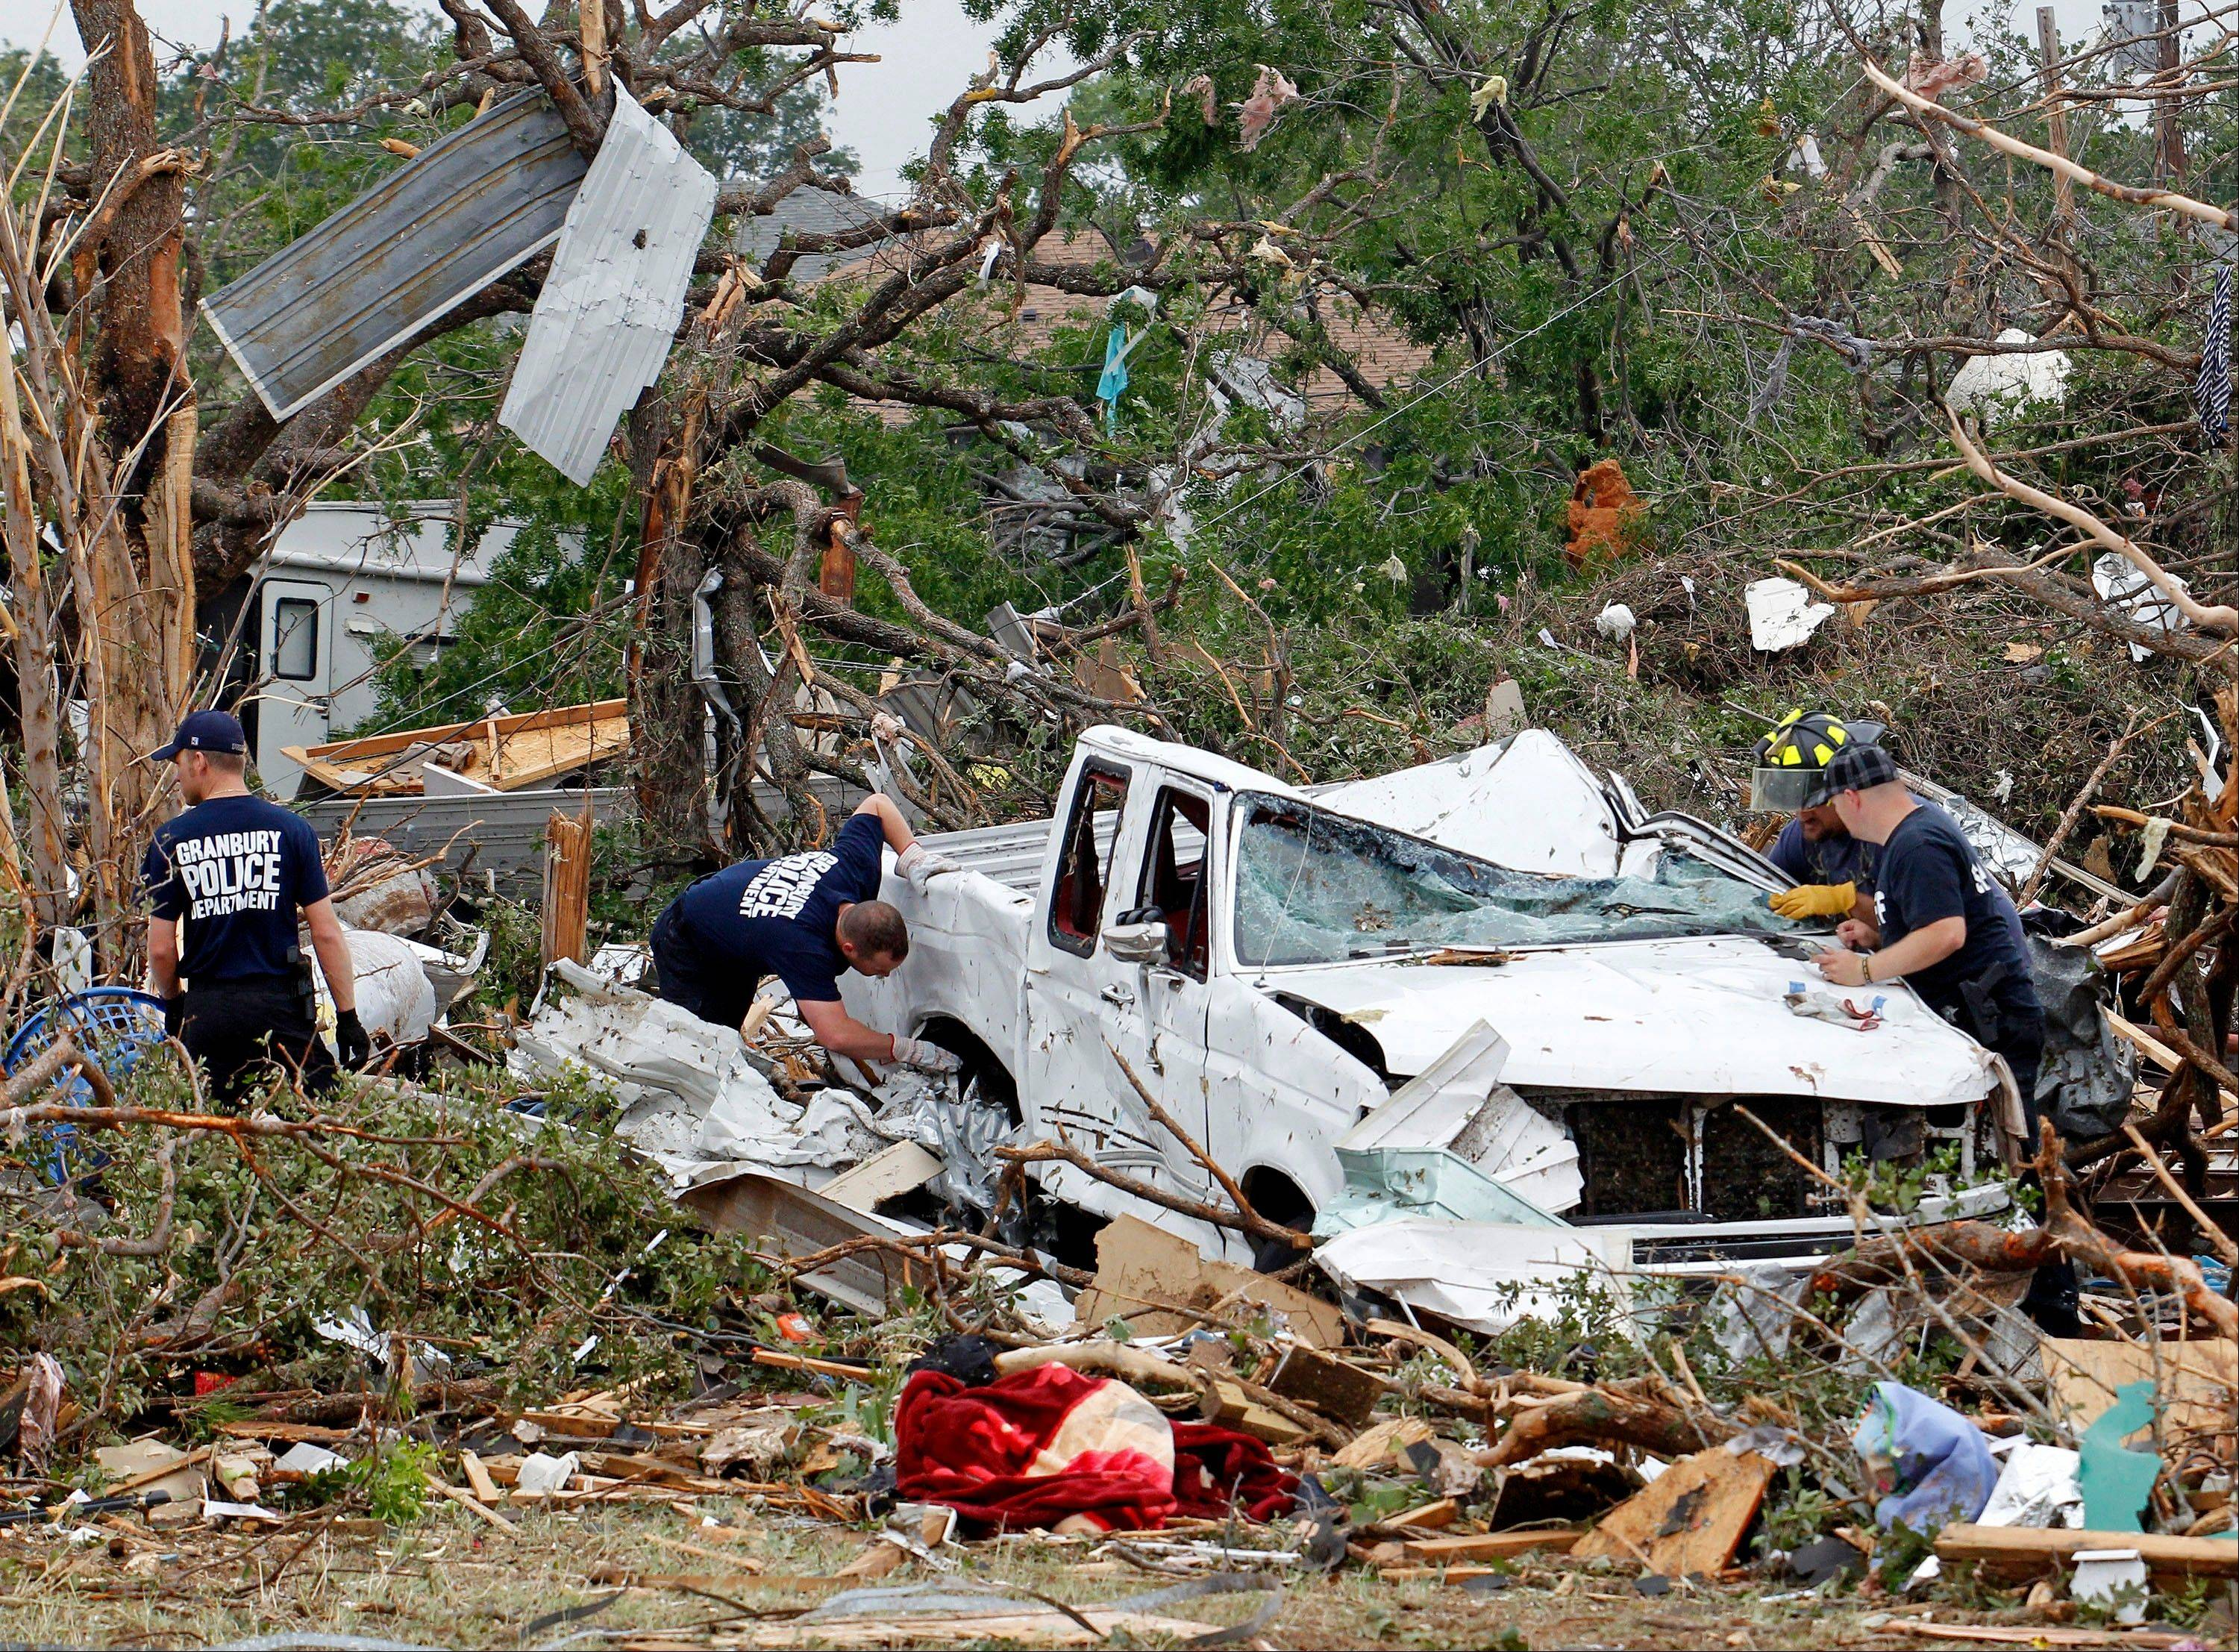 Crushed autos sit amid the rubble as emergency personnel continue search efforts to locate people in that are unaccounted for in the destroyed Rancho Brazos neighborhood of Granbury, Texas, Thursday, May 16, 2013. Ten tornadoes touched down in several small communities in North Texas overnight, leaving at least six people dead, dozens injured and hundreds homeless.